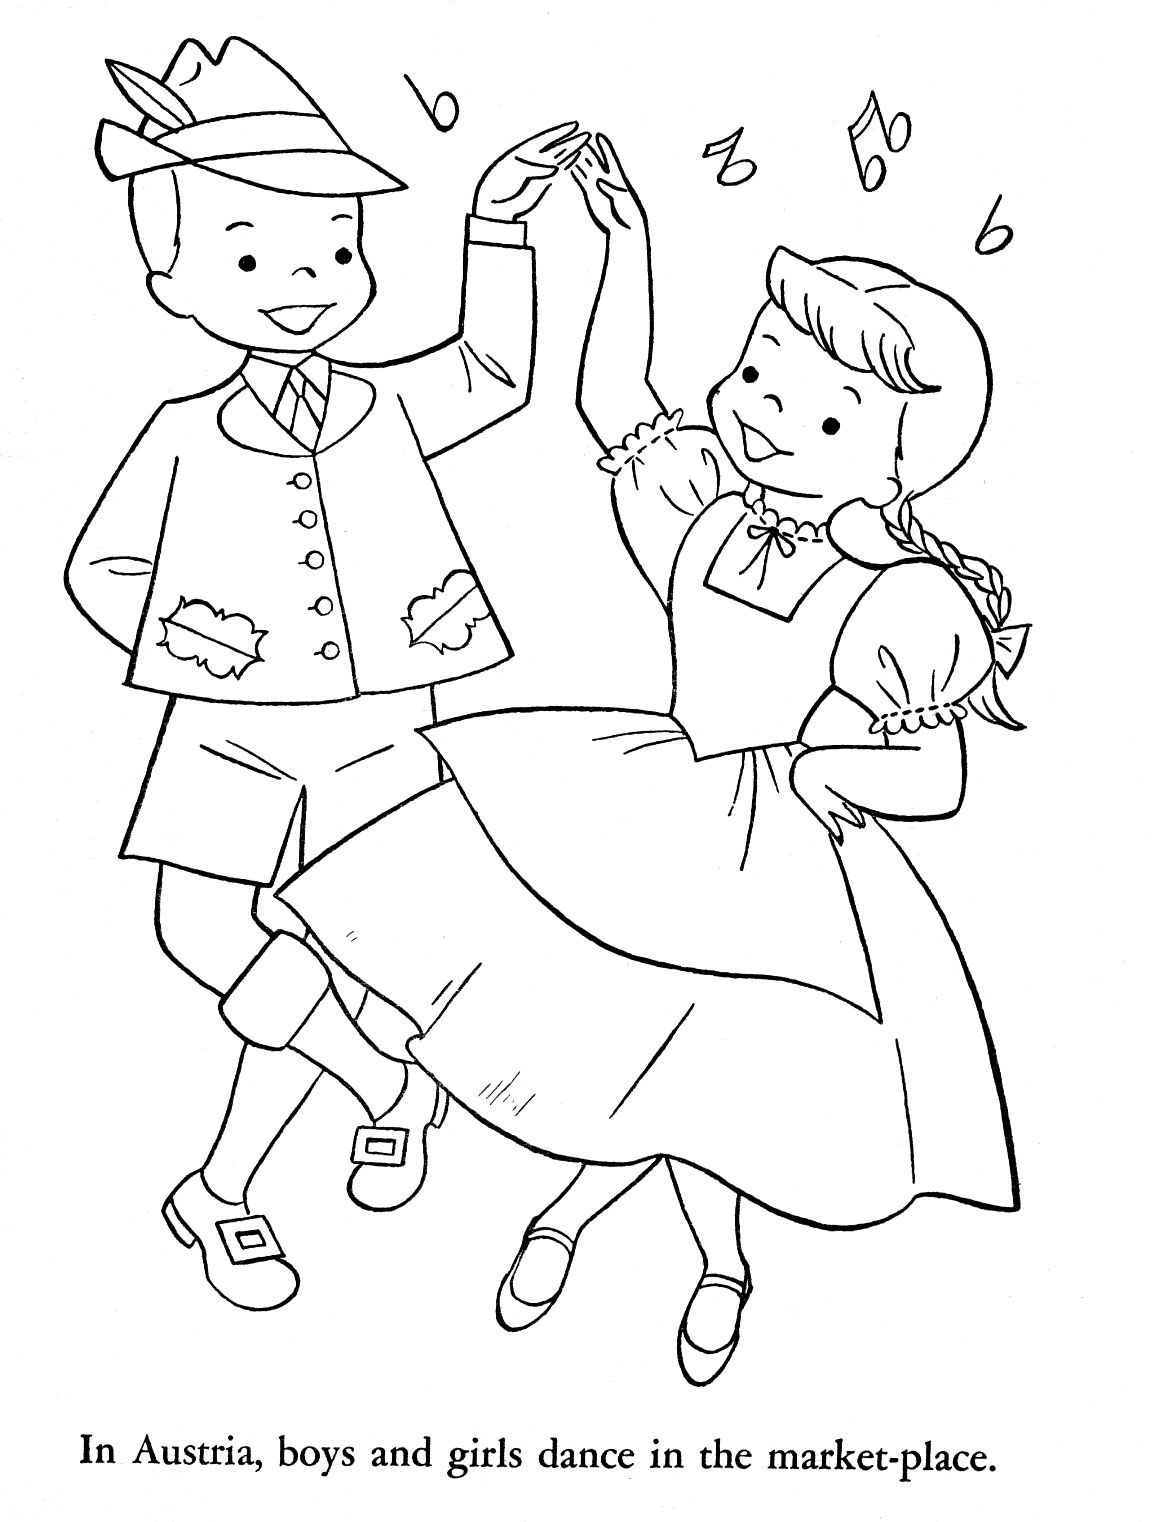 Austria Boy And Girl Dancing DancingColoring PagesColouringColoring